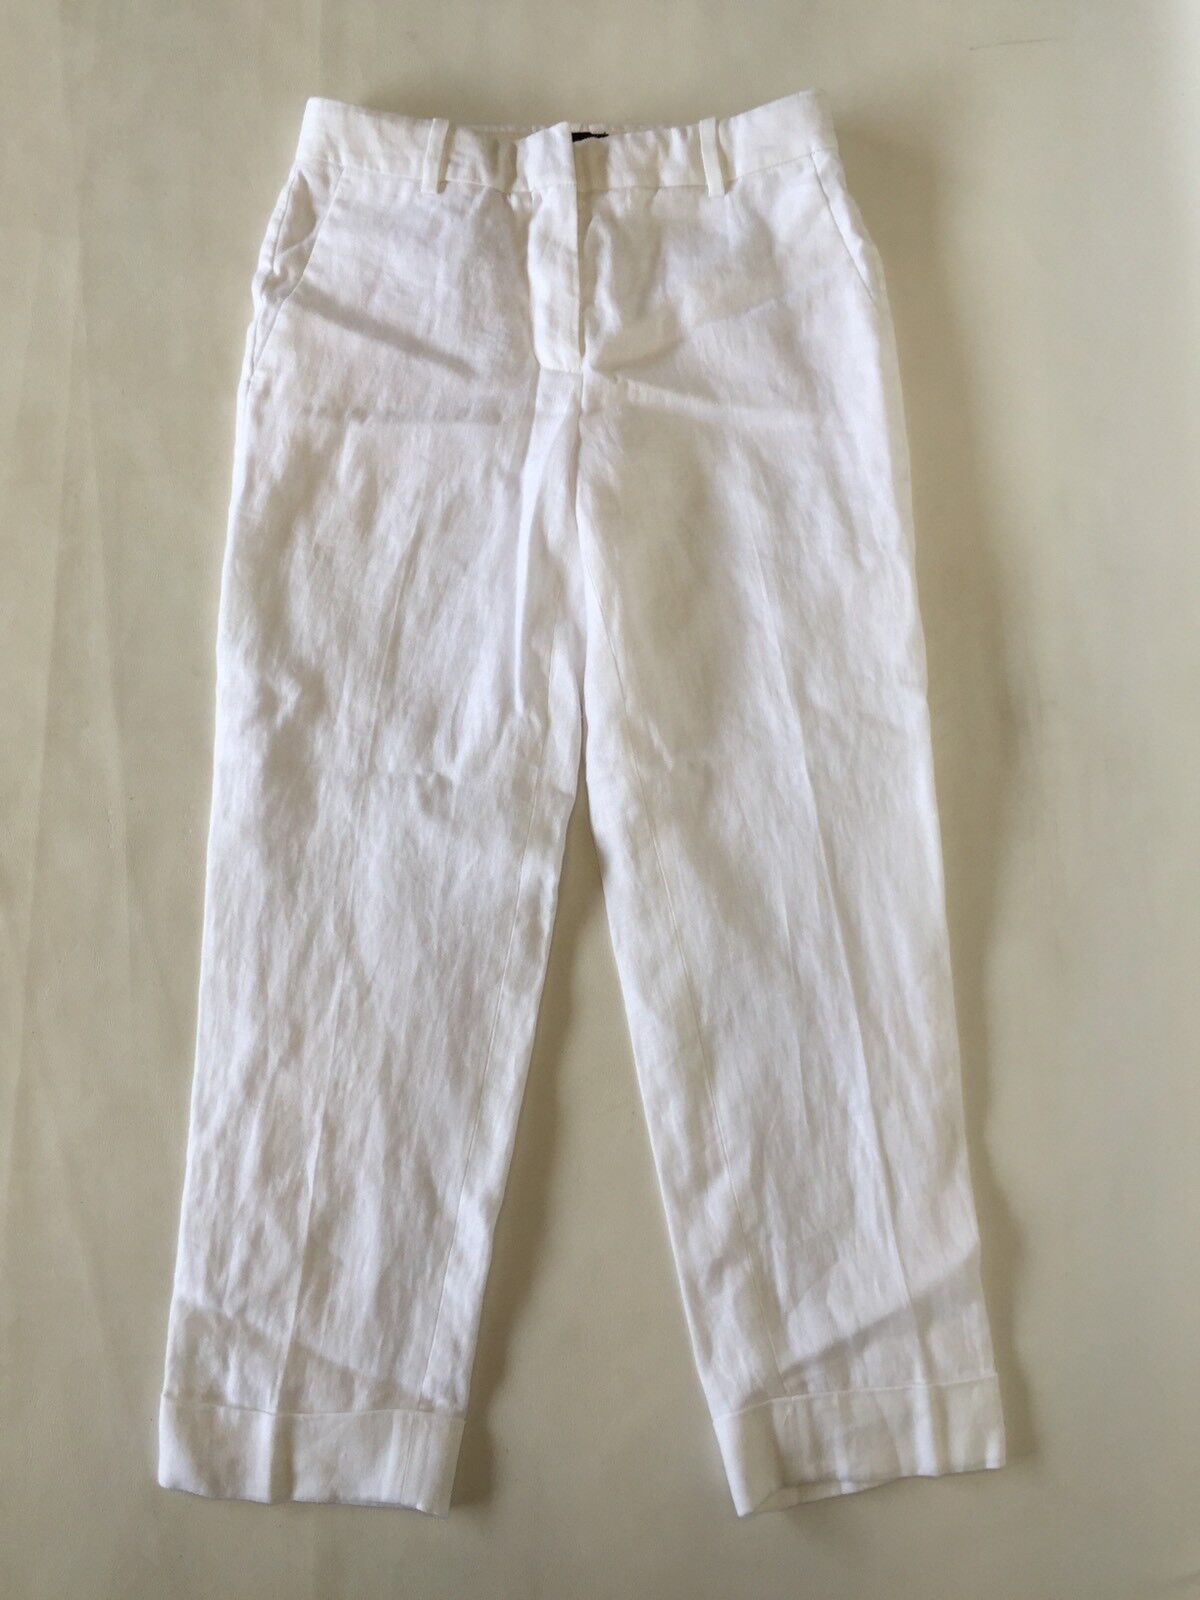 New JCREW Rhodes pant in linen White Size 2 G4372